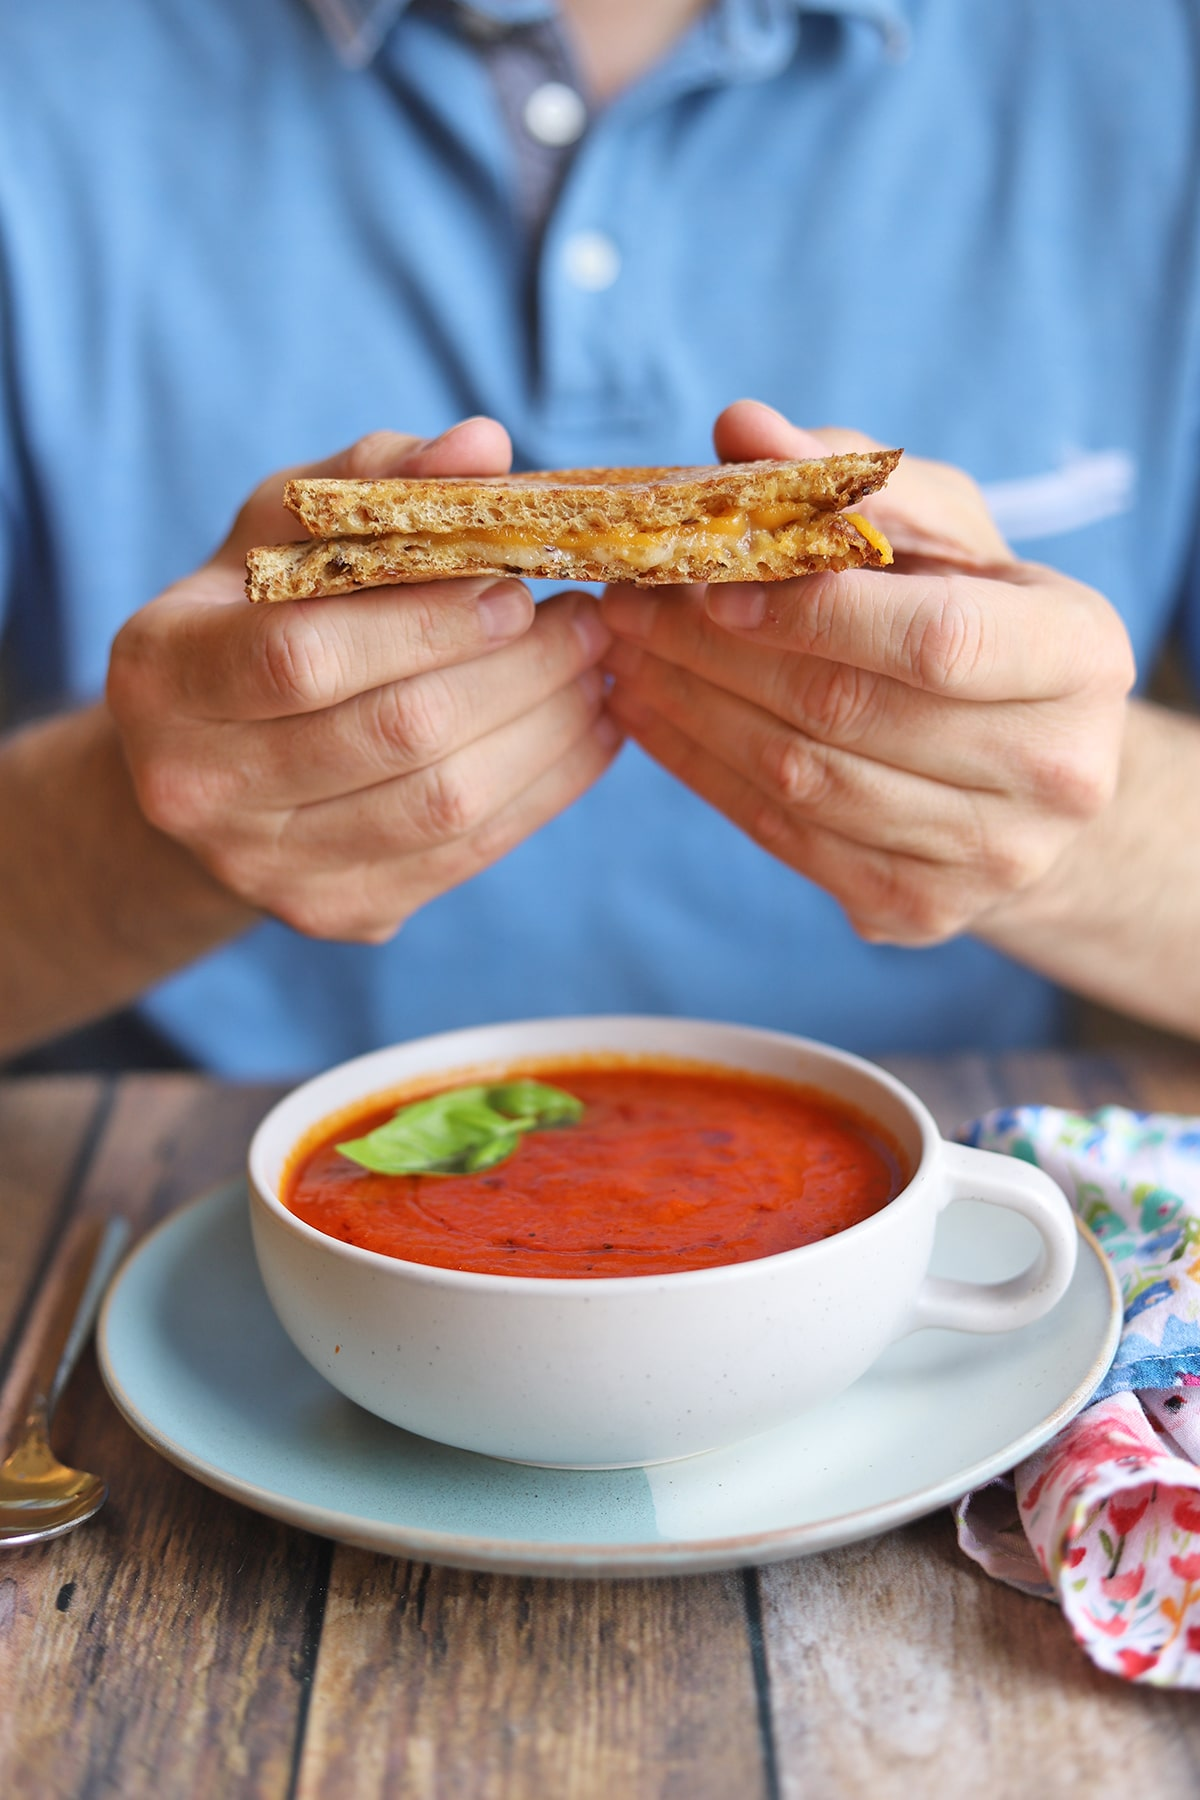 Hands holding grilled cheese sandwich over bowl of soup.